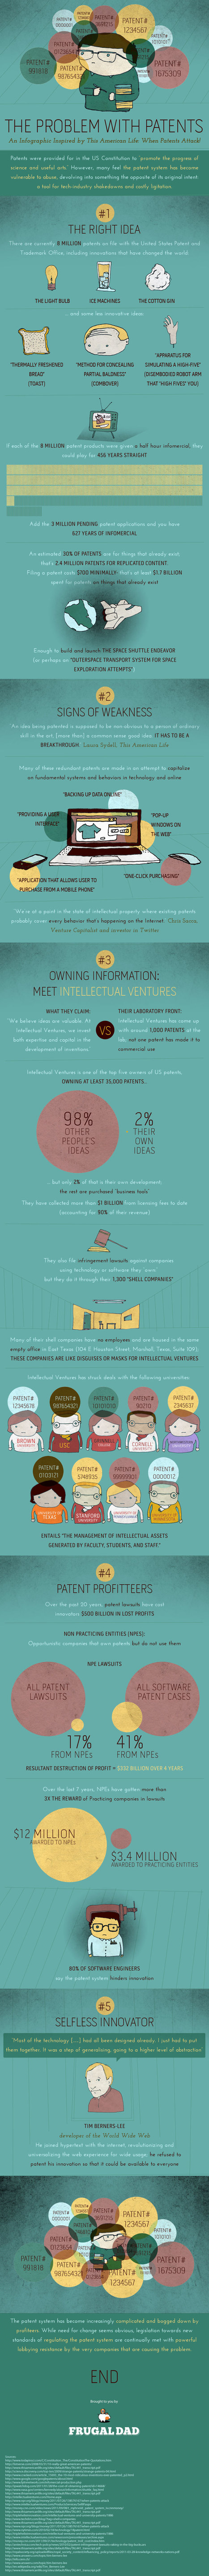 The best info-graphic explaining Patents, a must see   Mobile & Technology   Scoop.it